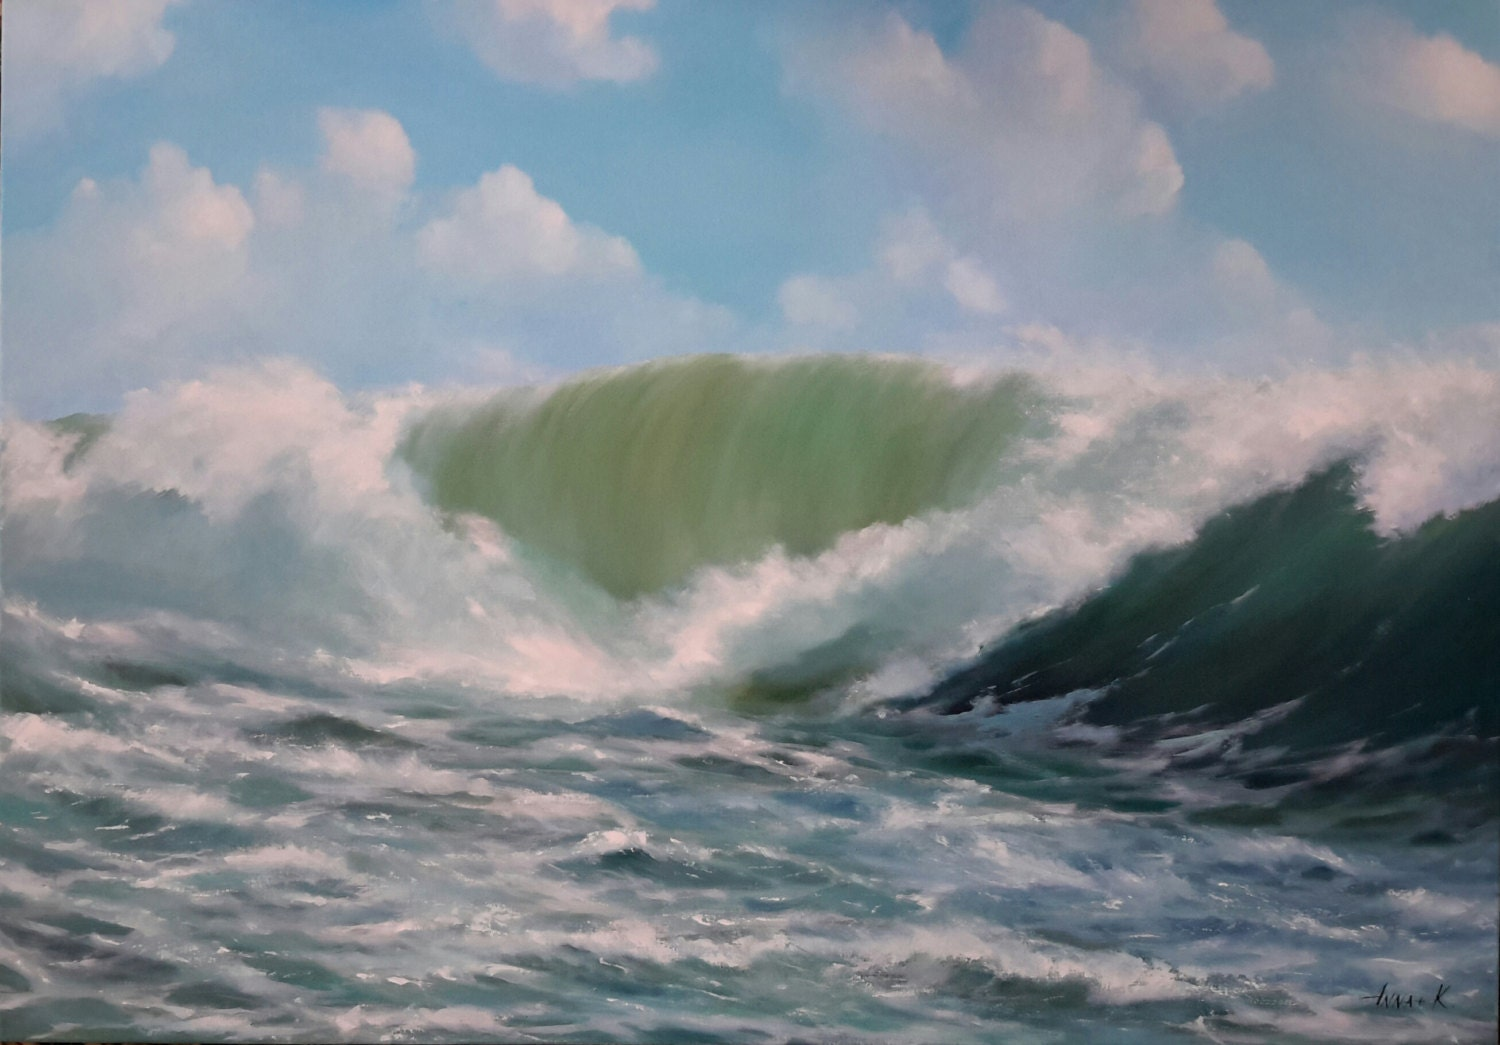 art, wave painting, wave art, surfing art,water joy,oil painting ...